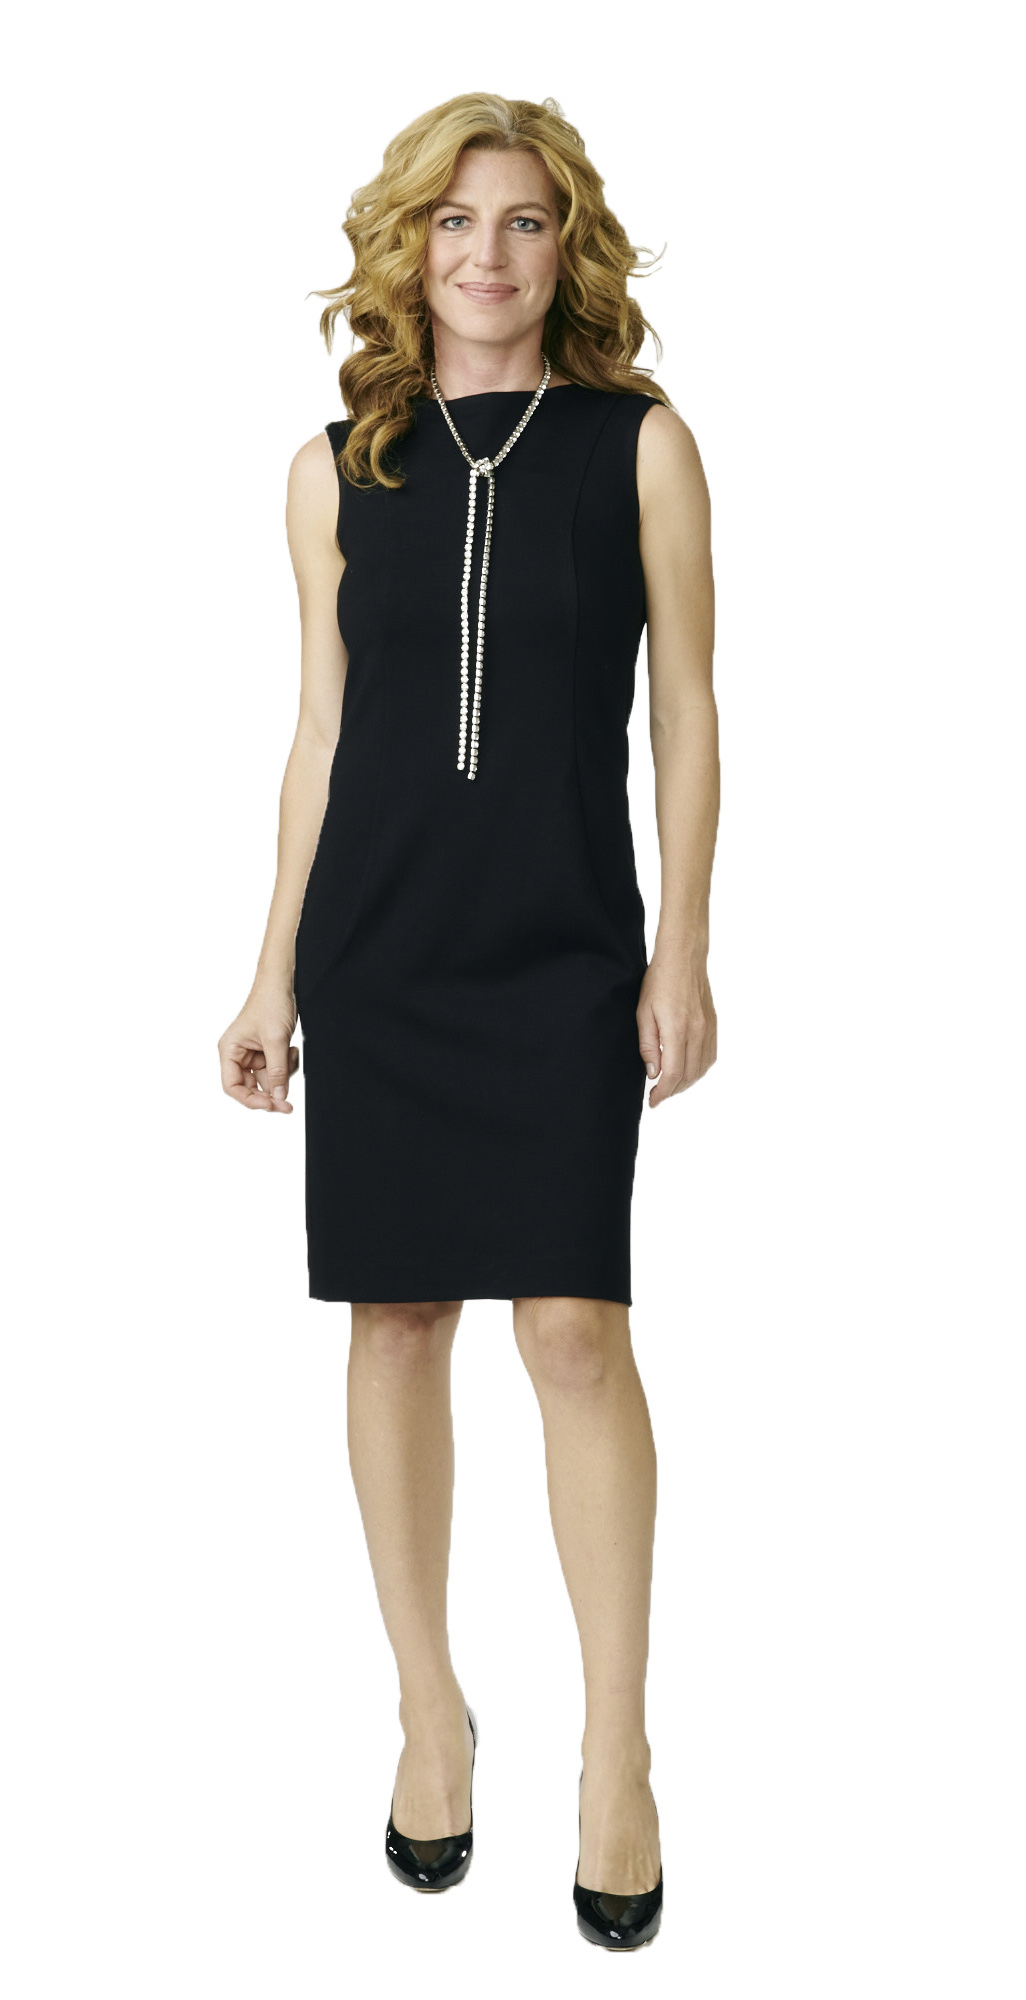 Our Go-To Dress in black is, without a doubt a perfect LBD.